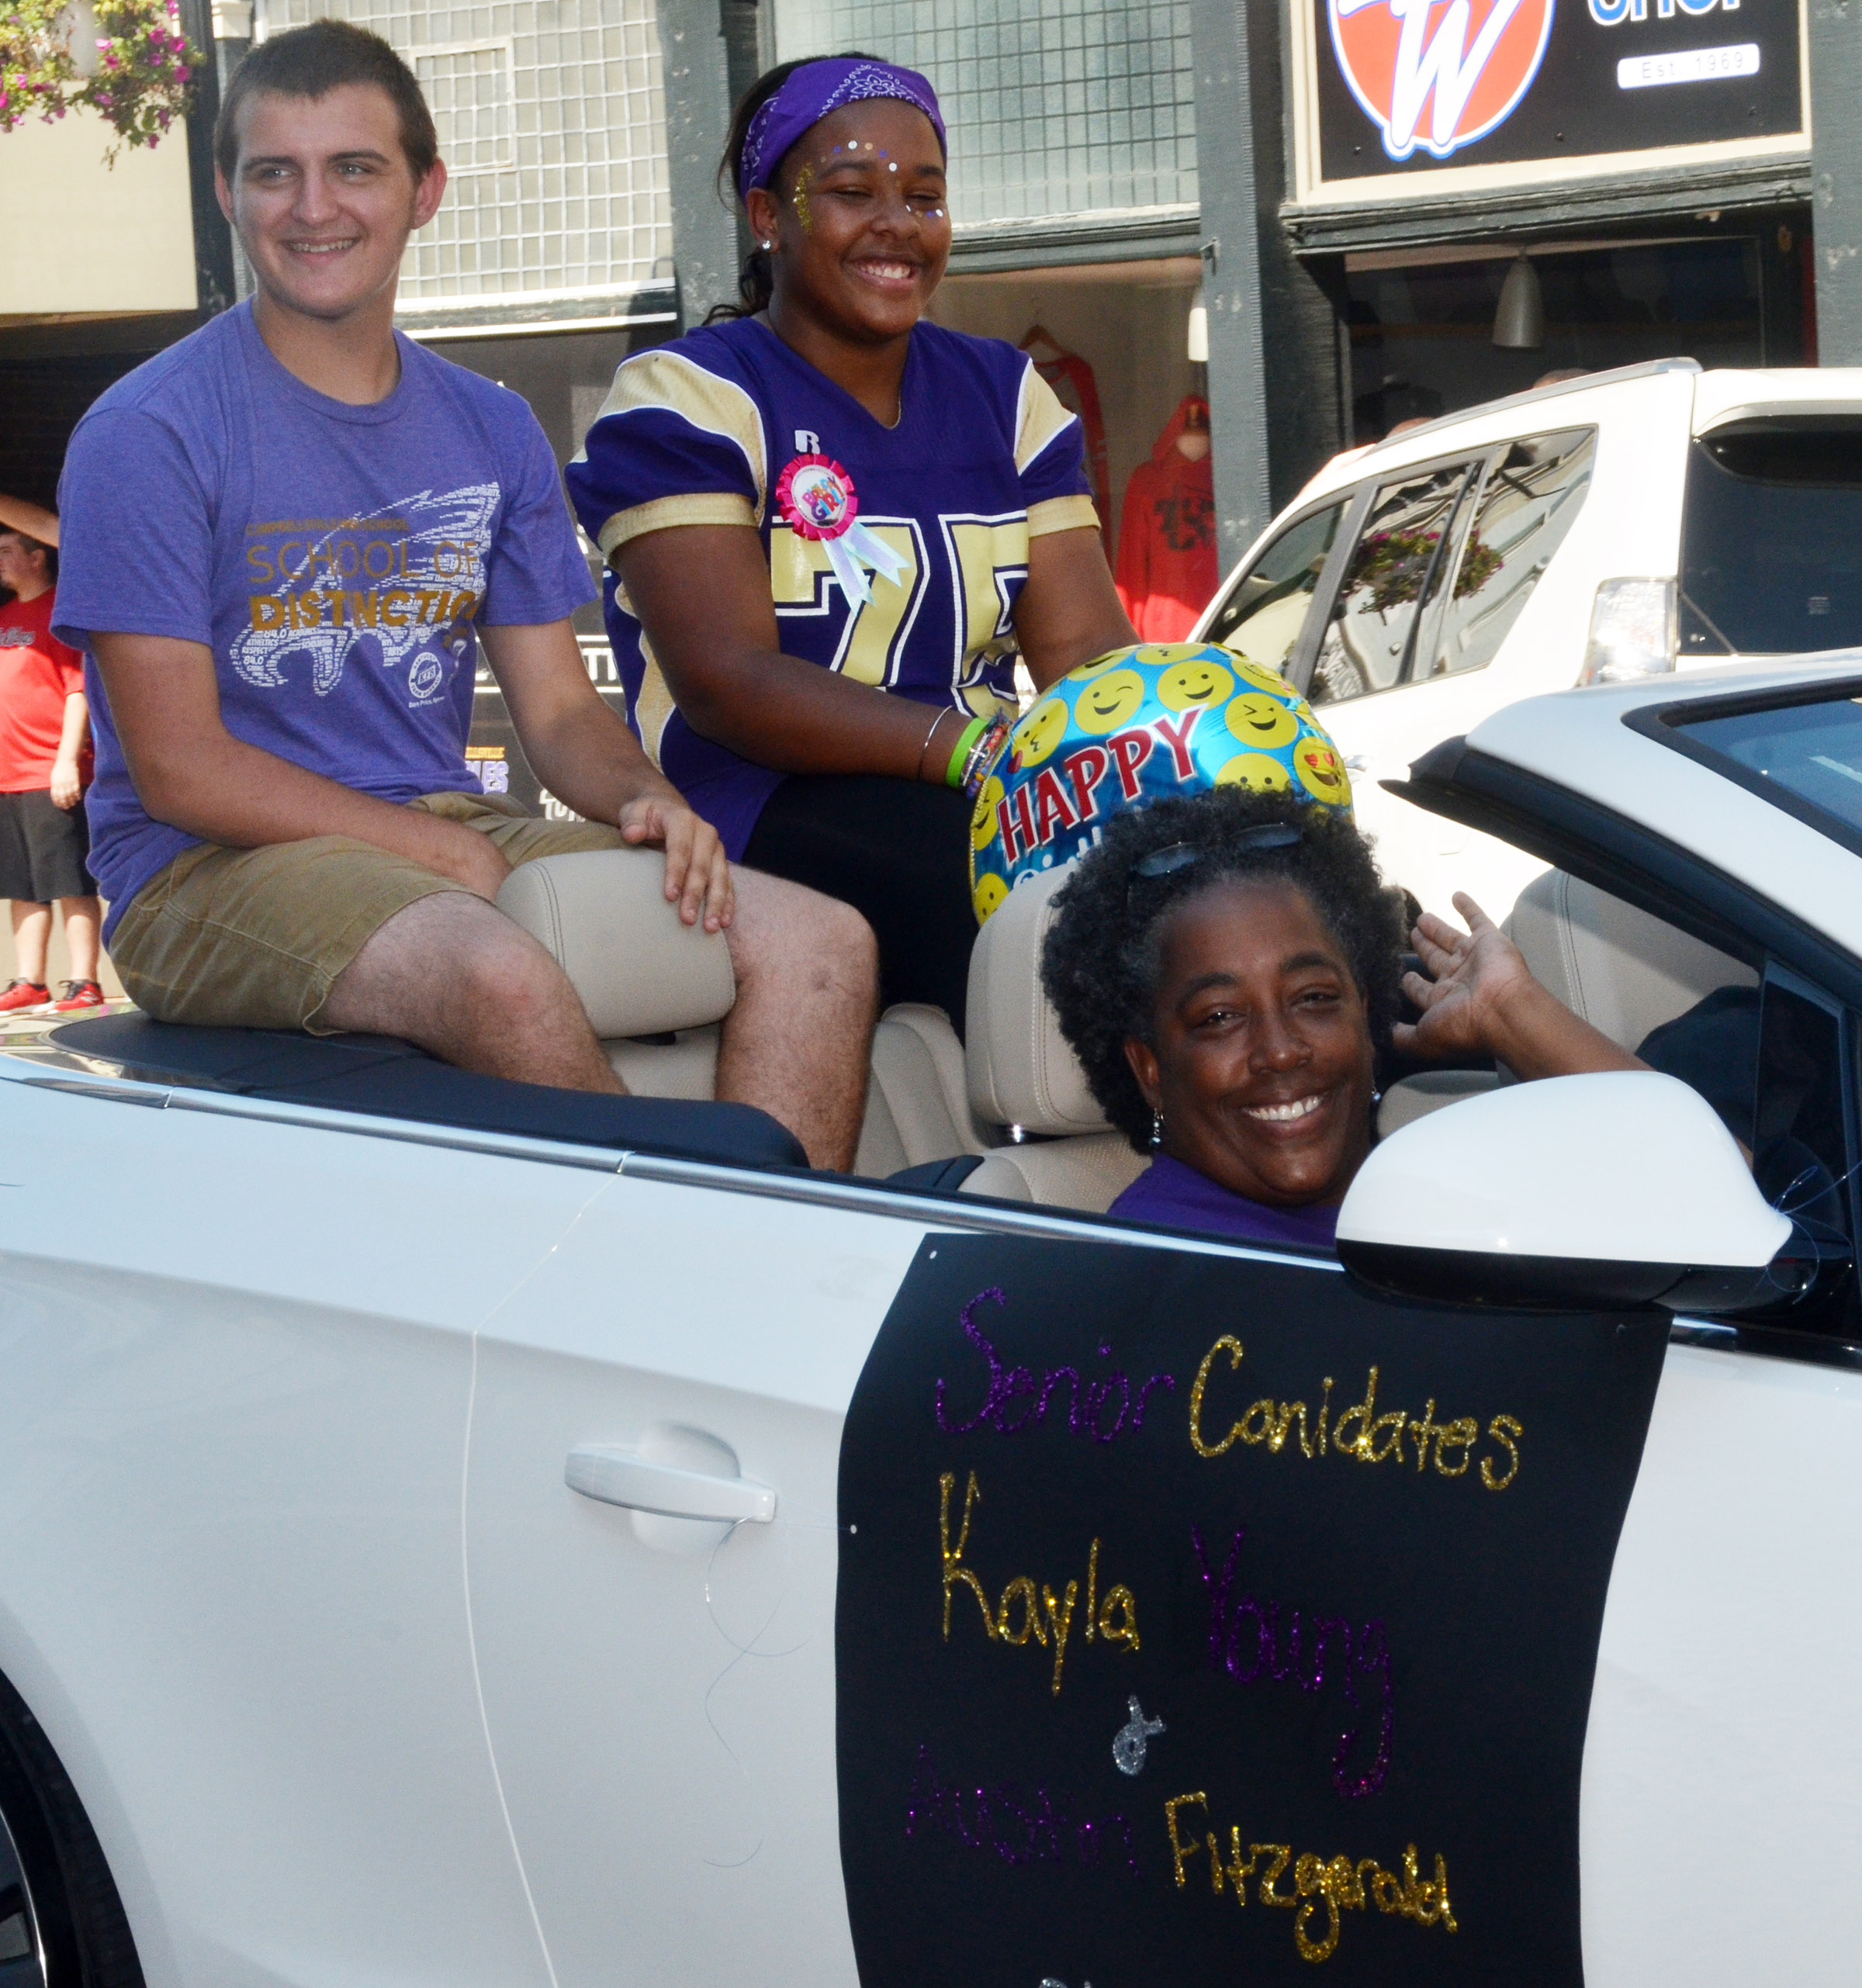 CHS senior homecoming candidates Austin Fitzgerald and Kayla Young ride in the parade.